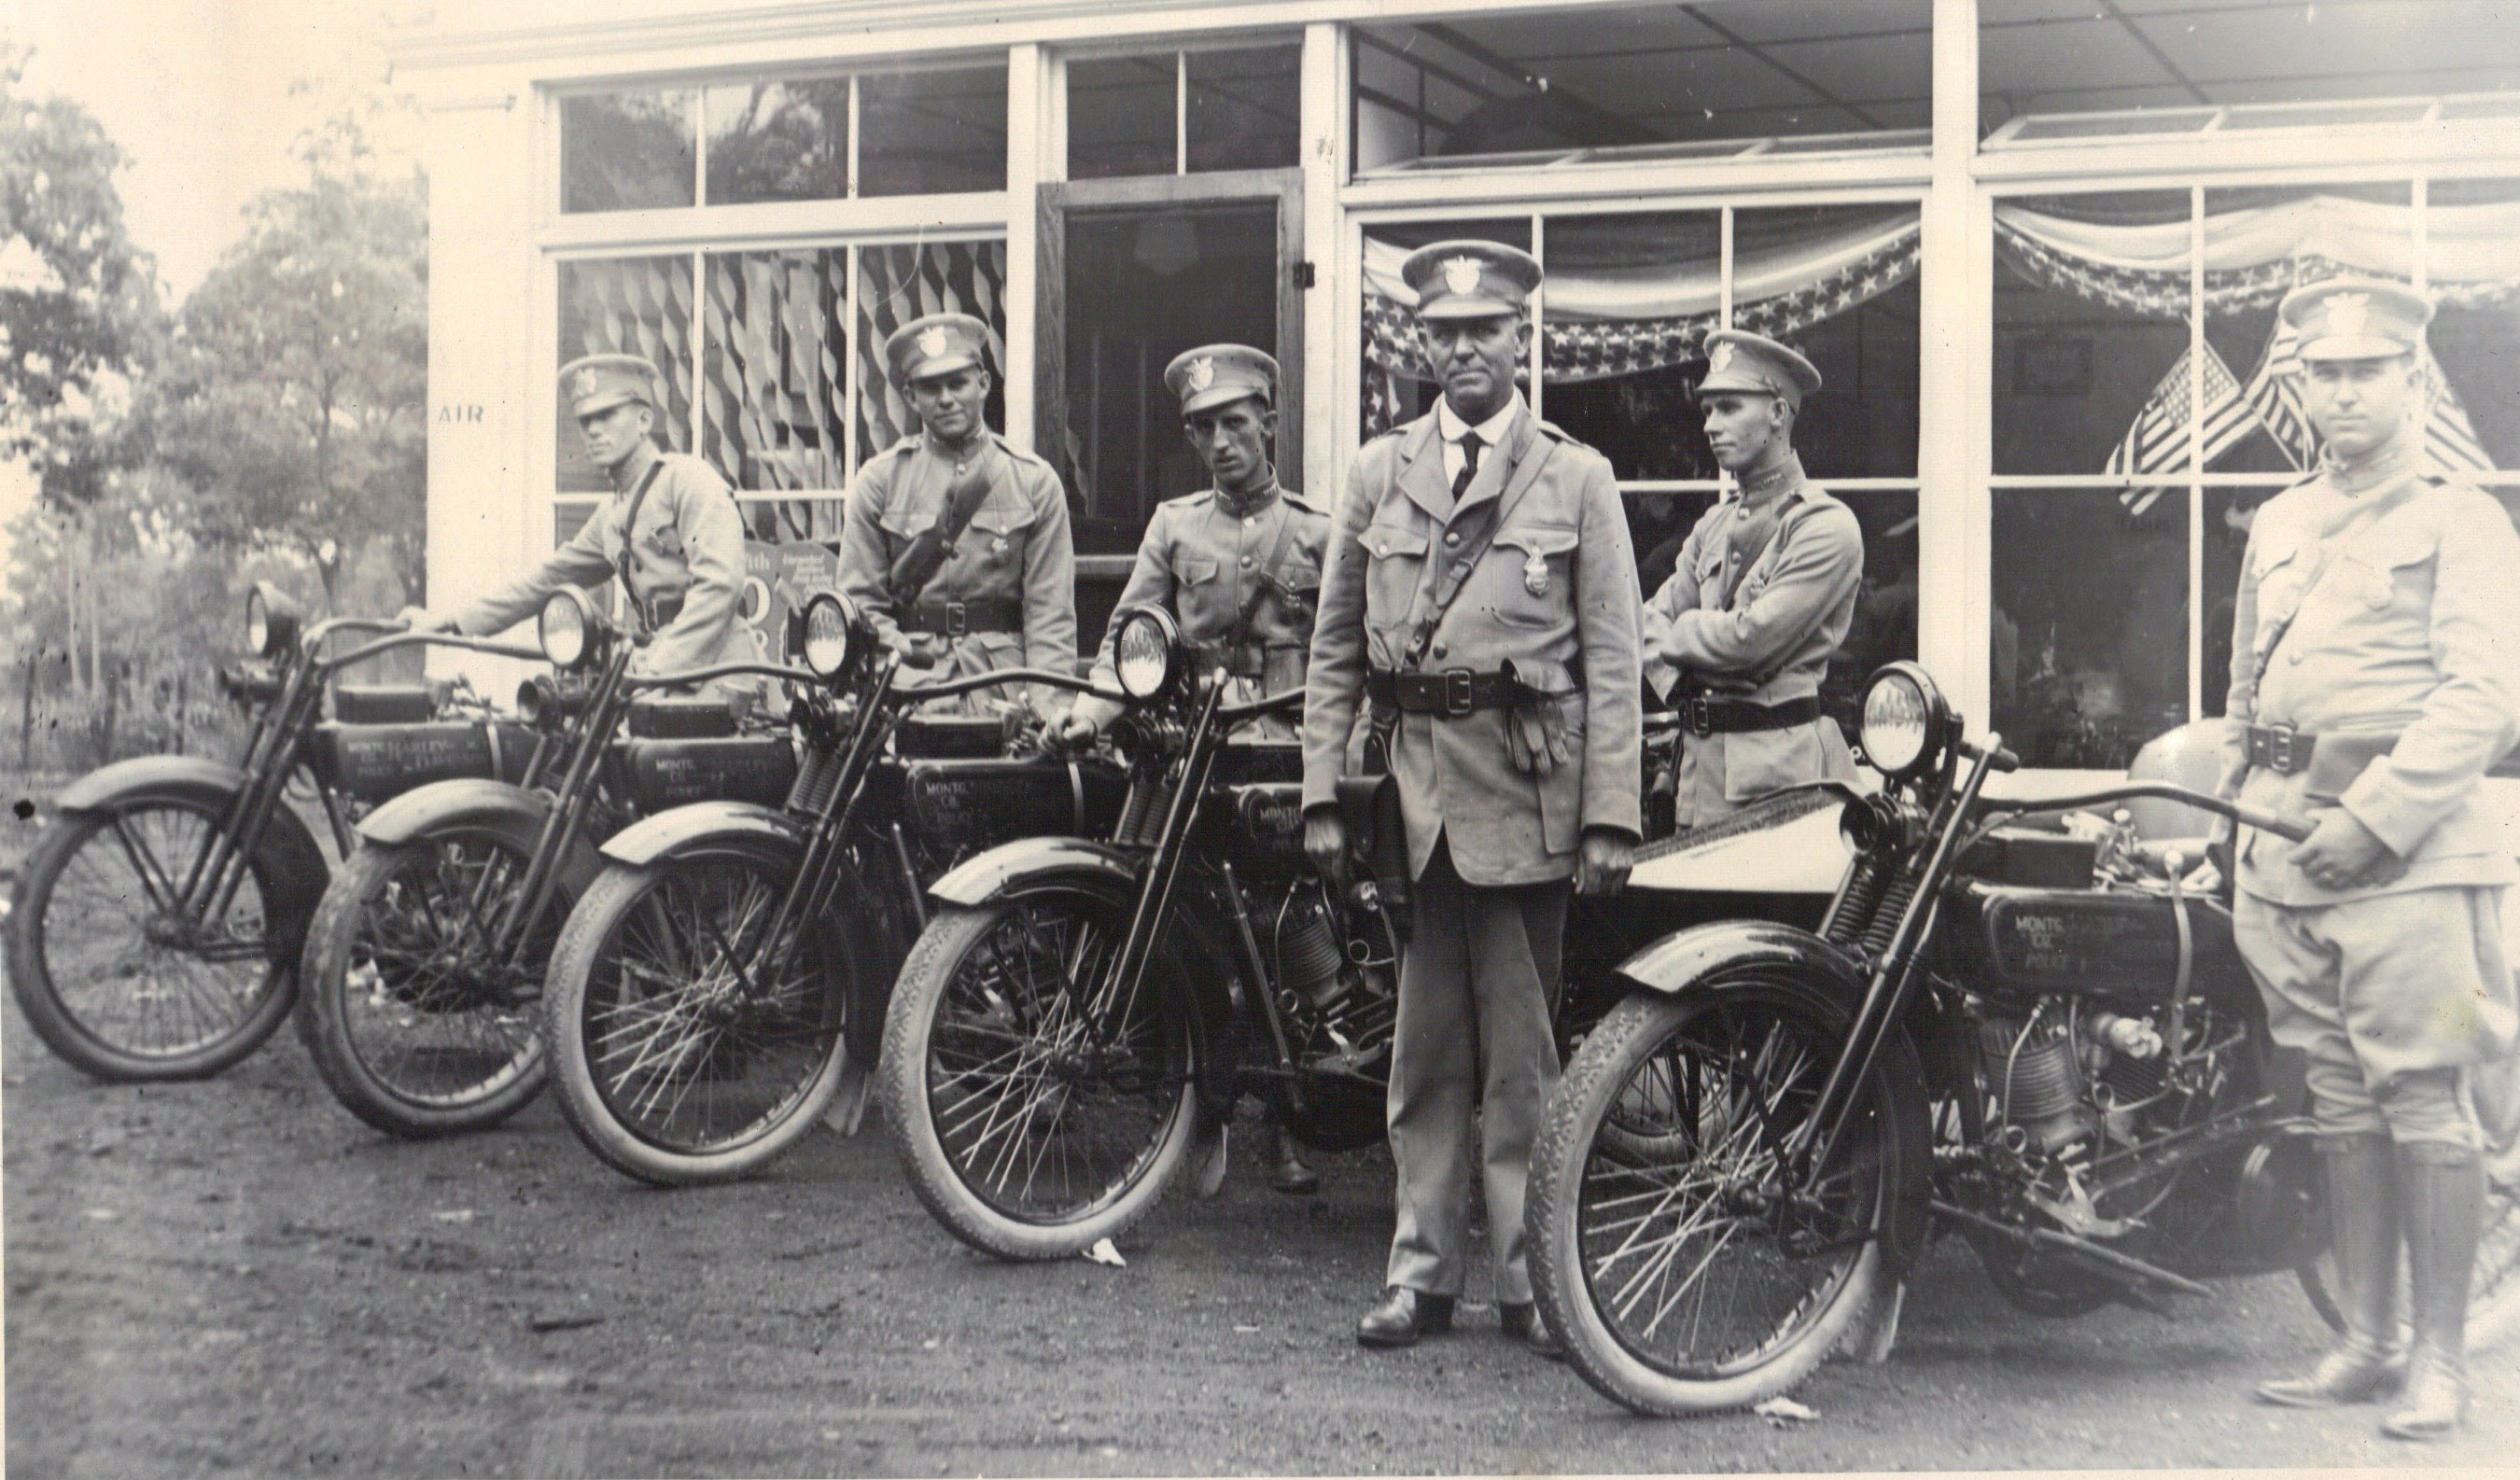 a history of the harley davidson motorcycle company in the united states Harley davidson: an adrenaline-filled history sr and william s harley founded the harley-davidson motorcycle company by the time the united states.